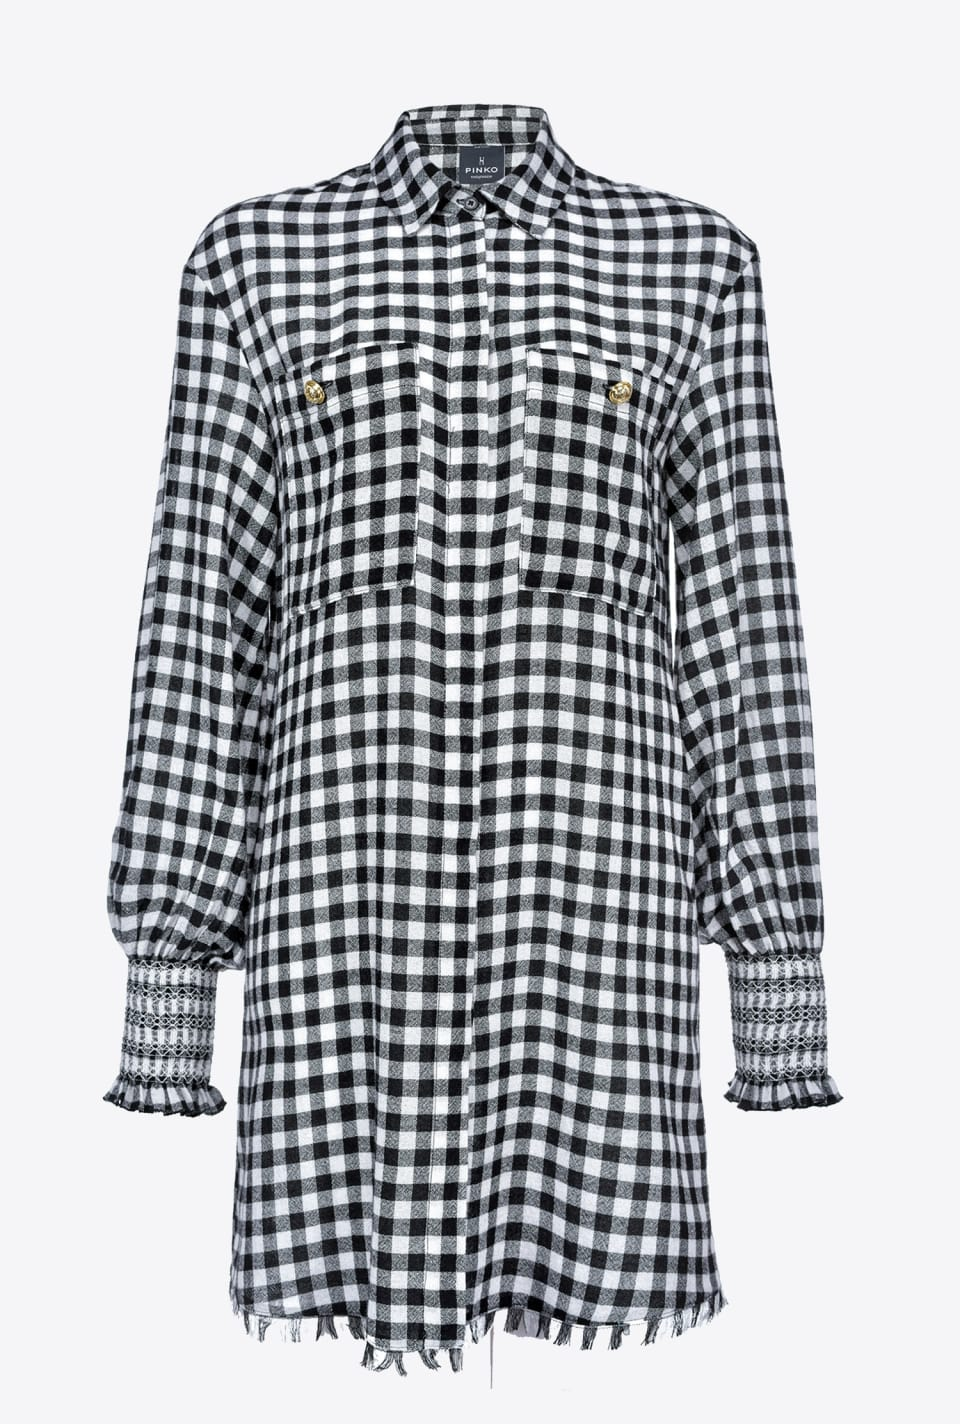 Vichy shirtwaister dress - Pinko